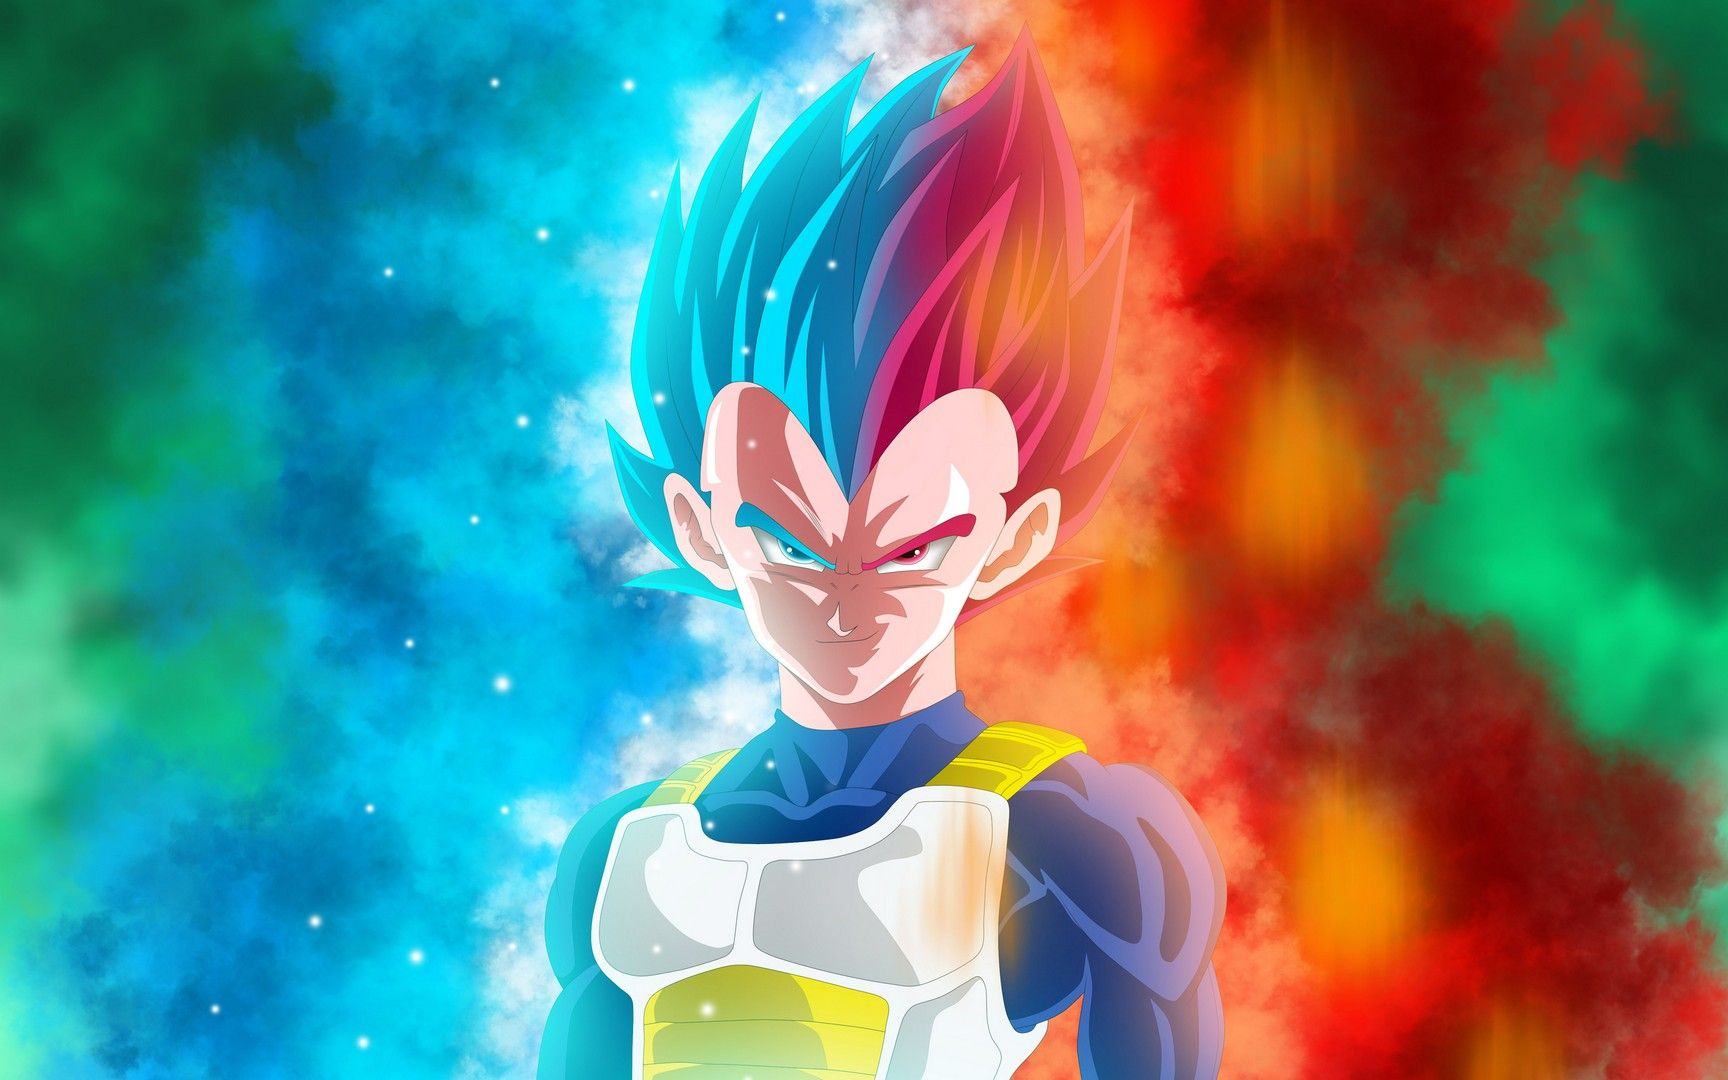 Dragon Ball Super Wallpaper Ps4 Wallpaper Vegeta Dragon Ball Super 5k Anime 13920 In 2020 Anime Dragon Ball Super Dragon Ball Super Wallpapers Dragon Ball Wallpapers